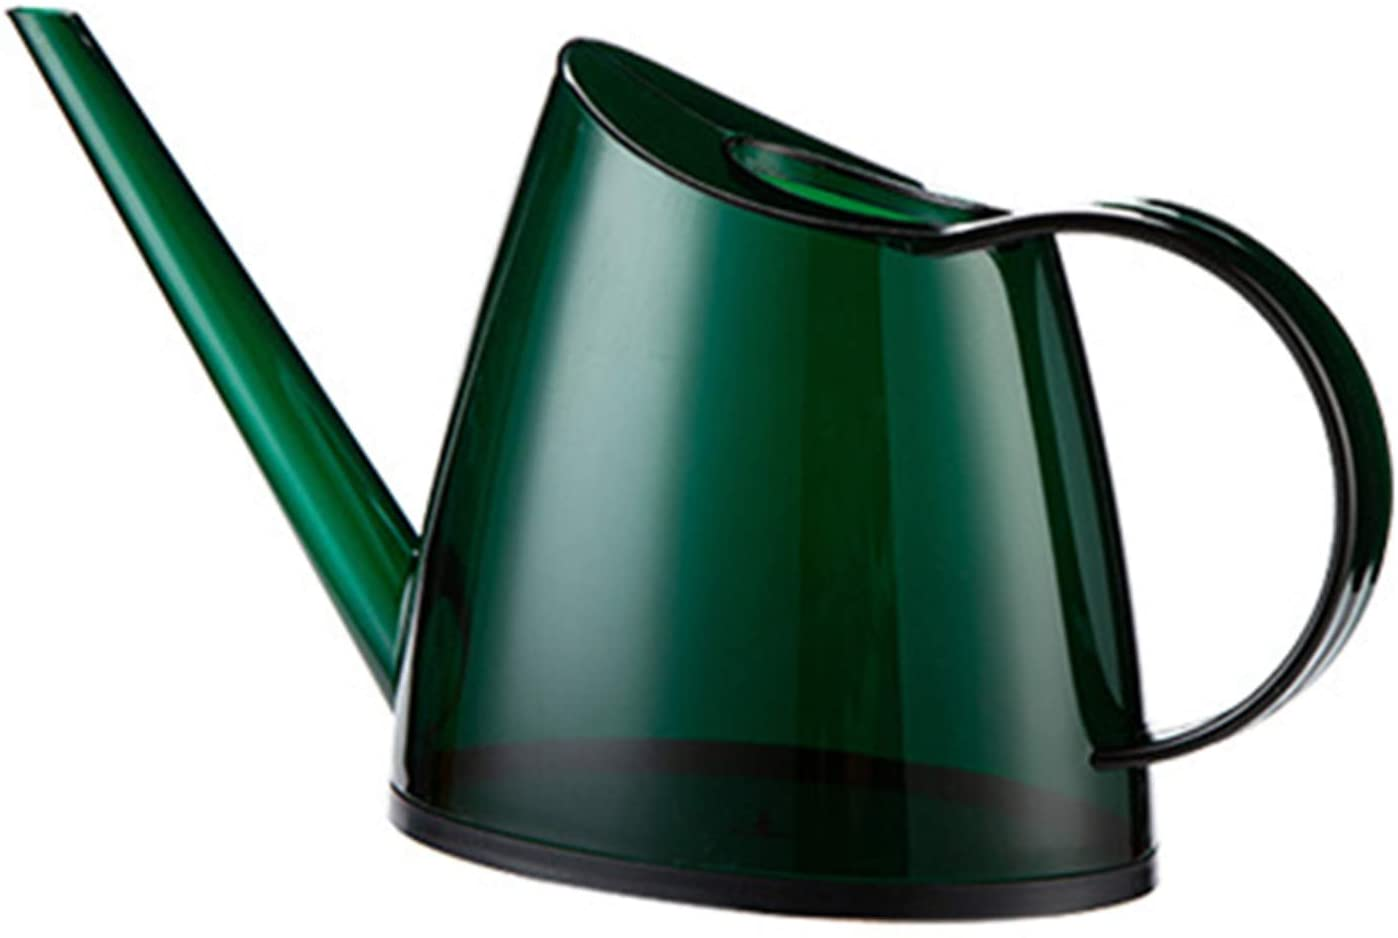 FVILIPUS Indoor Watering Can, for House Bonsai Plants Flower Succulents Decorative Long Spout Transparent Watering Can1.4l 1/3 Gallon Modern Watering Pot (Green)